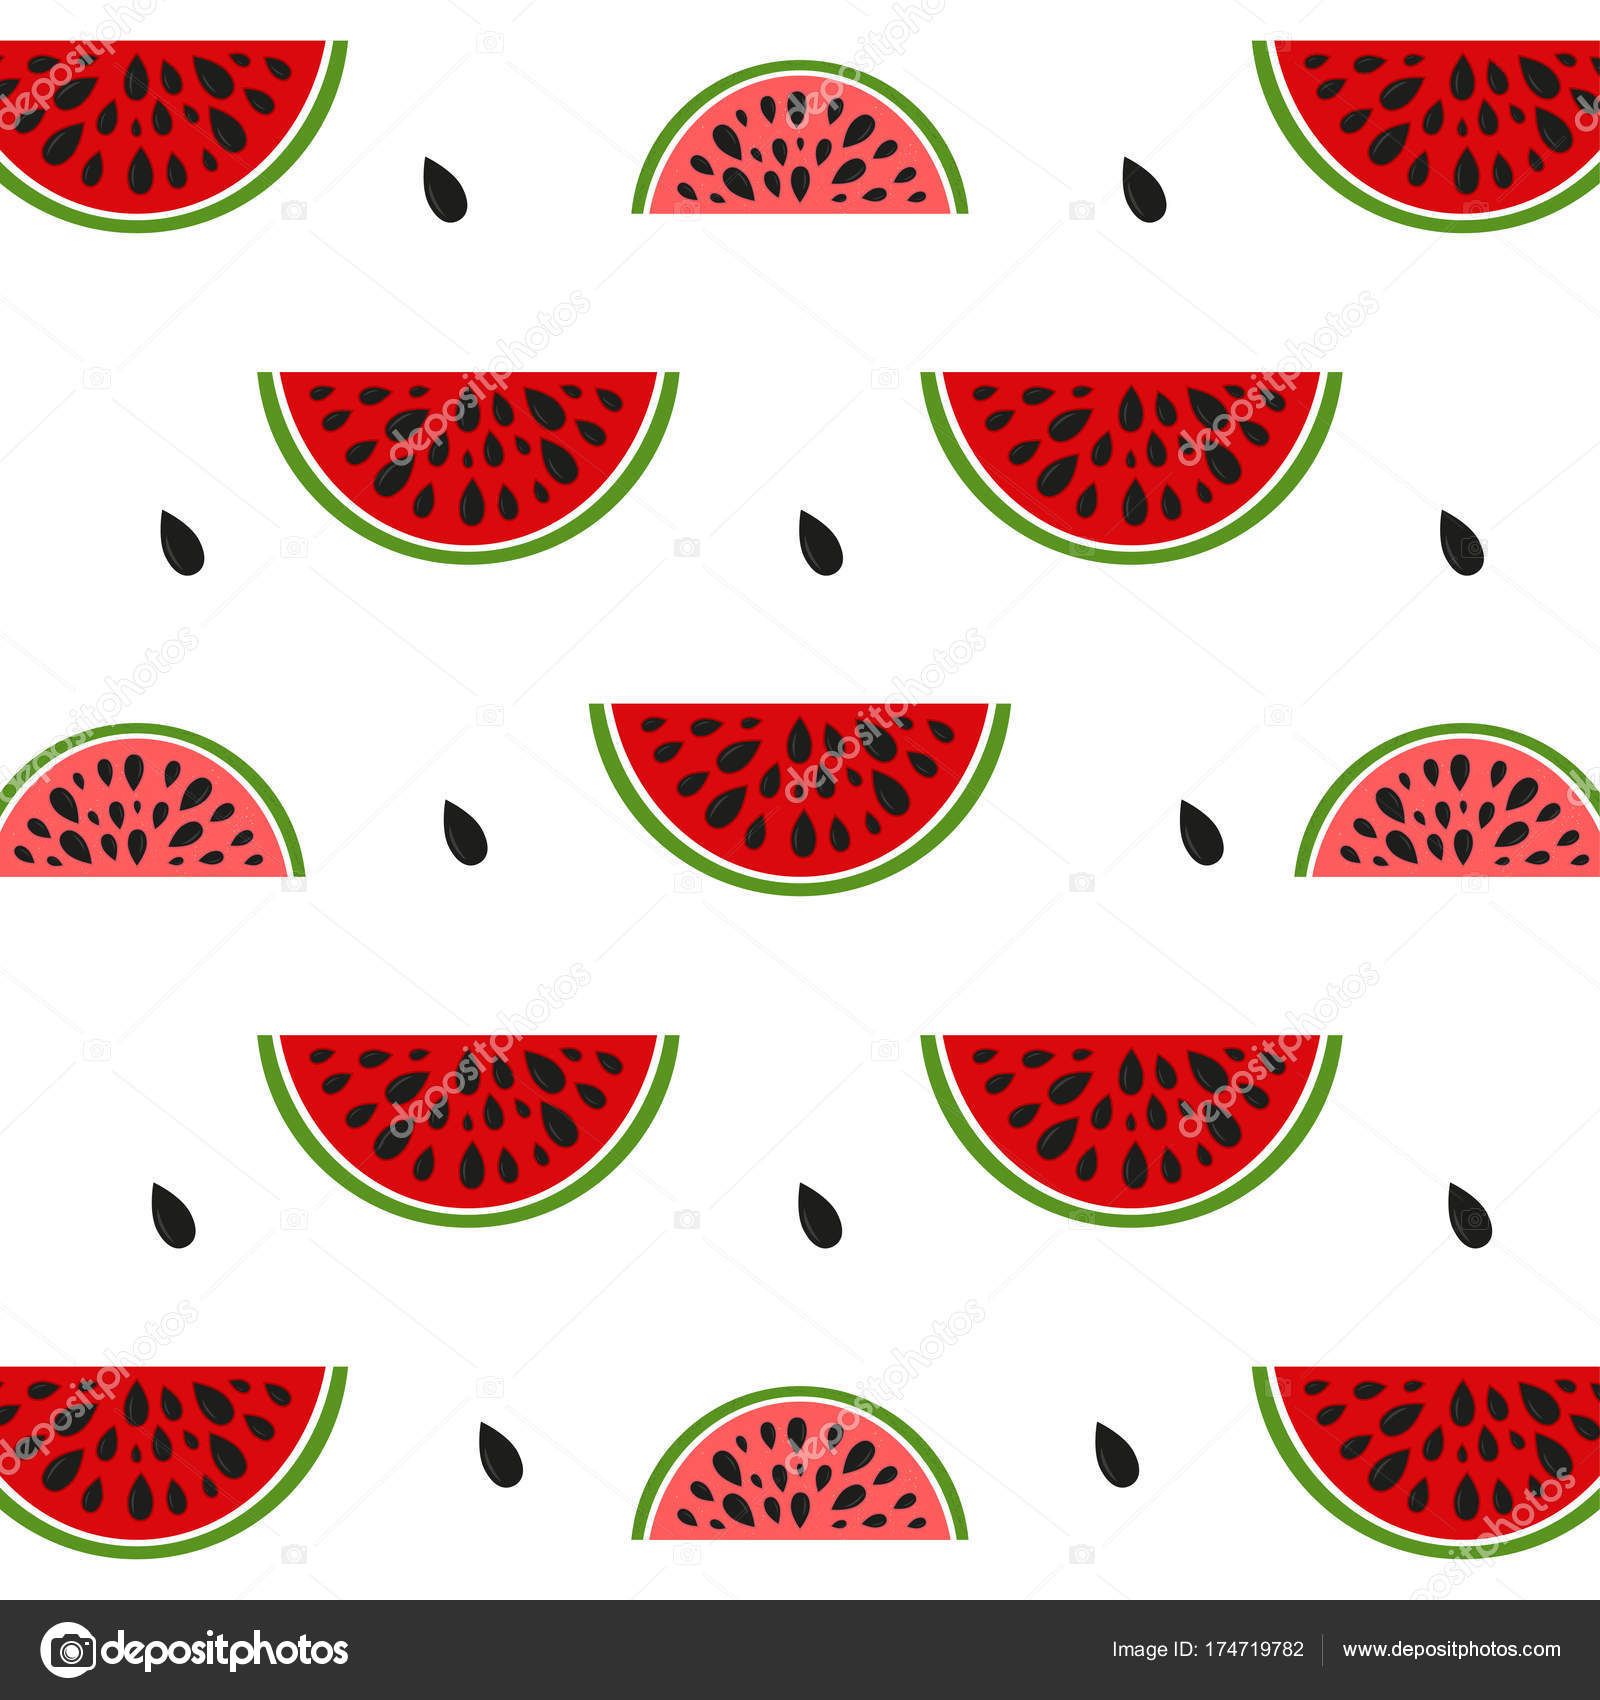 pattern background watermelon design greeting card summer invitation